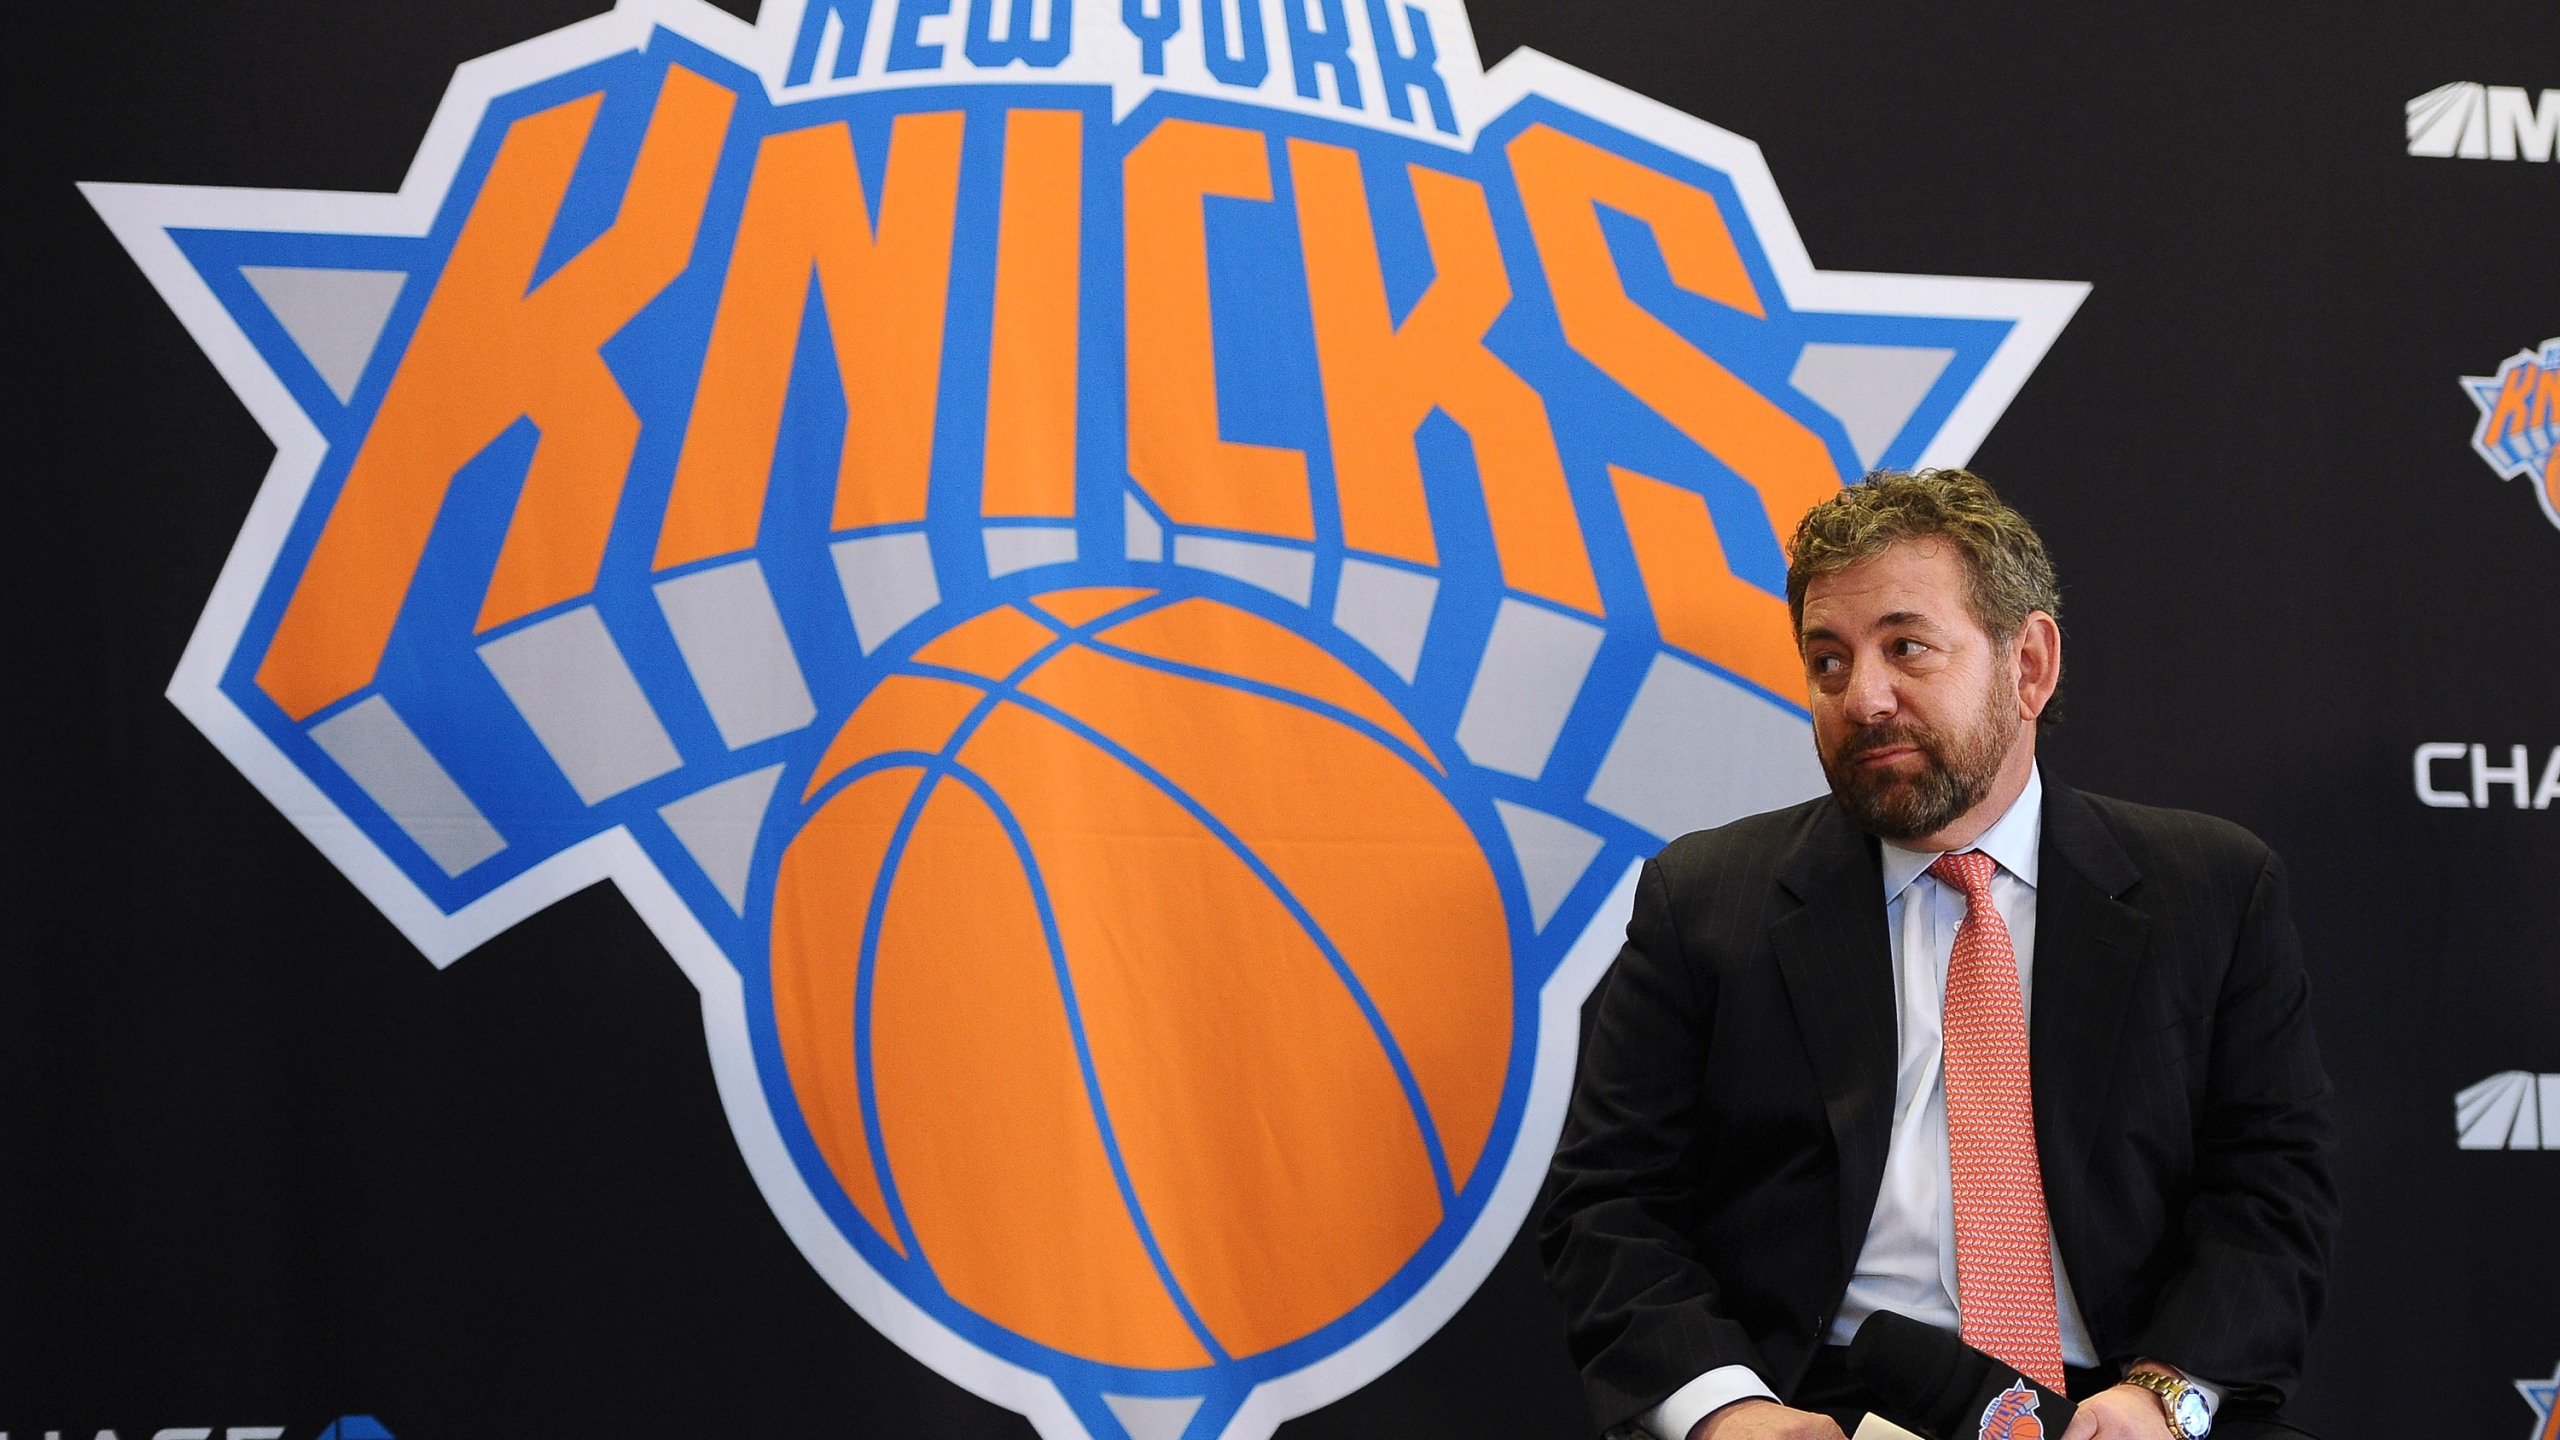 James Dolan, Executive Chairman of Madison Square Garden looks on during the press conference on March 18, 2014 in New York City. (Credit: Maddie Meyer/Getty Images)